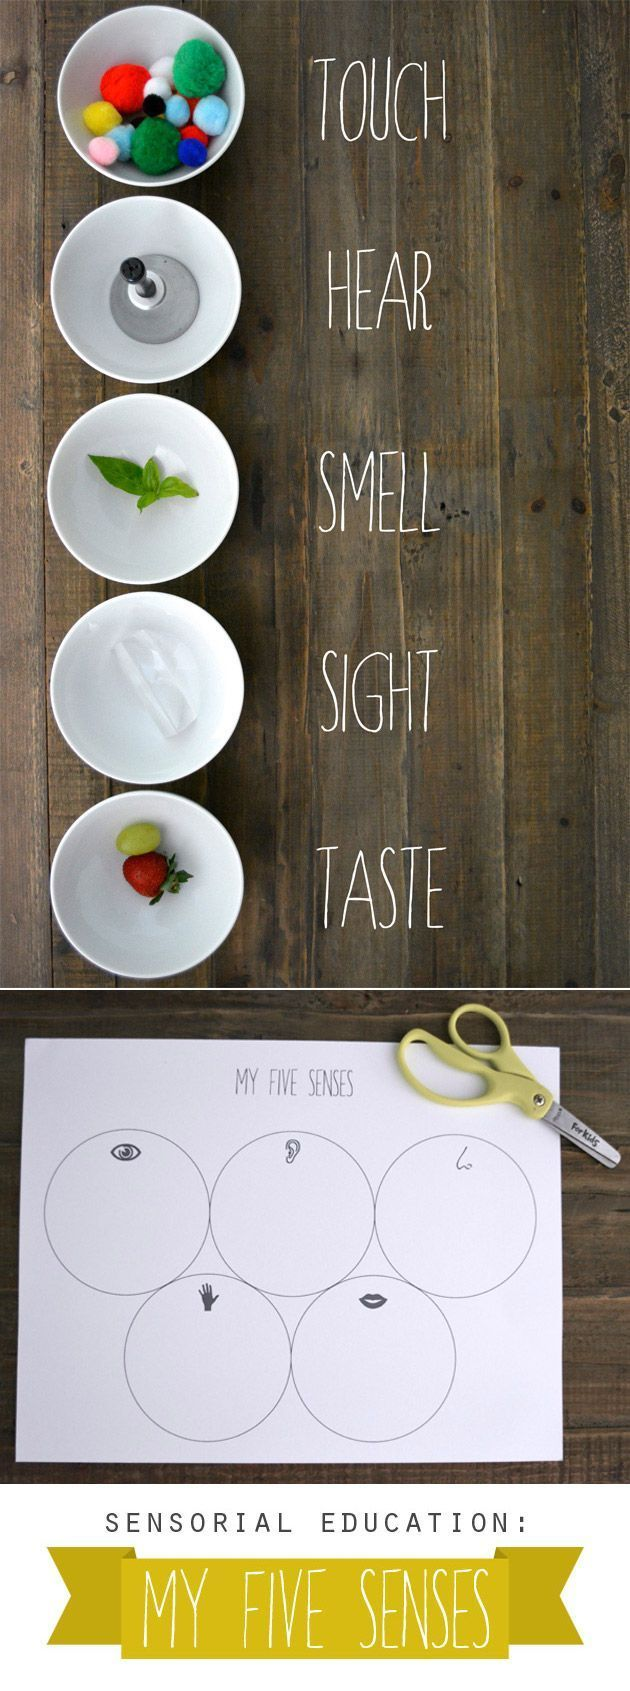 My Five Senses (+ printable)... Simply by being thoughtful about what children touch, hear, see, and smell during a learning experience, we can turn an ordinary lesson into lasting memory.